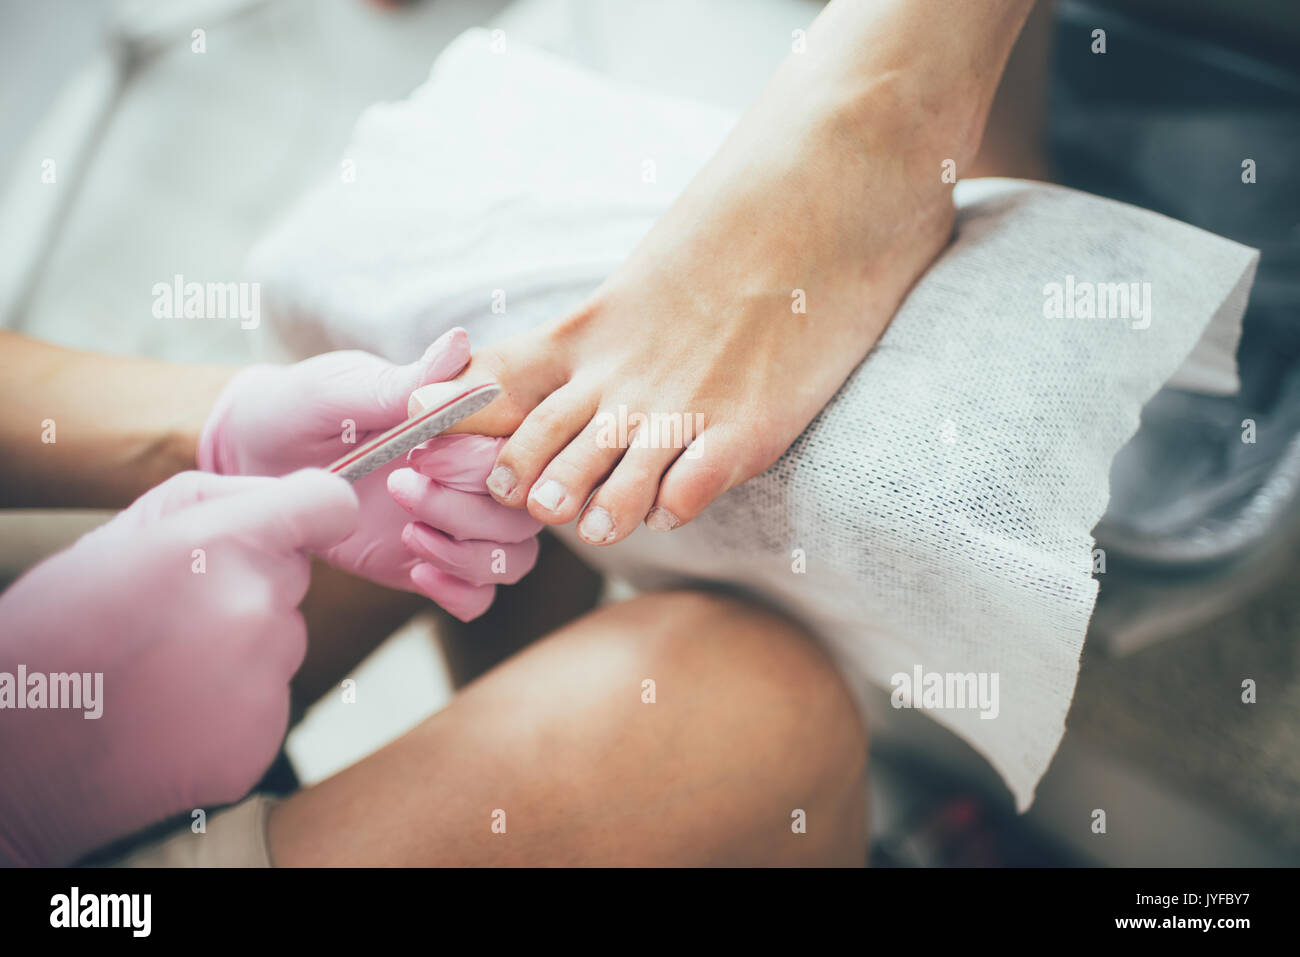 hands making a pedicure. Beauty salon, female feet, real picture - Stock Image